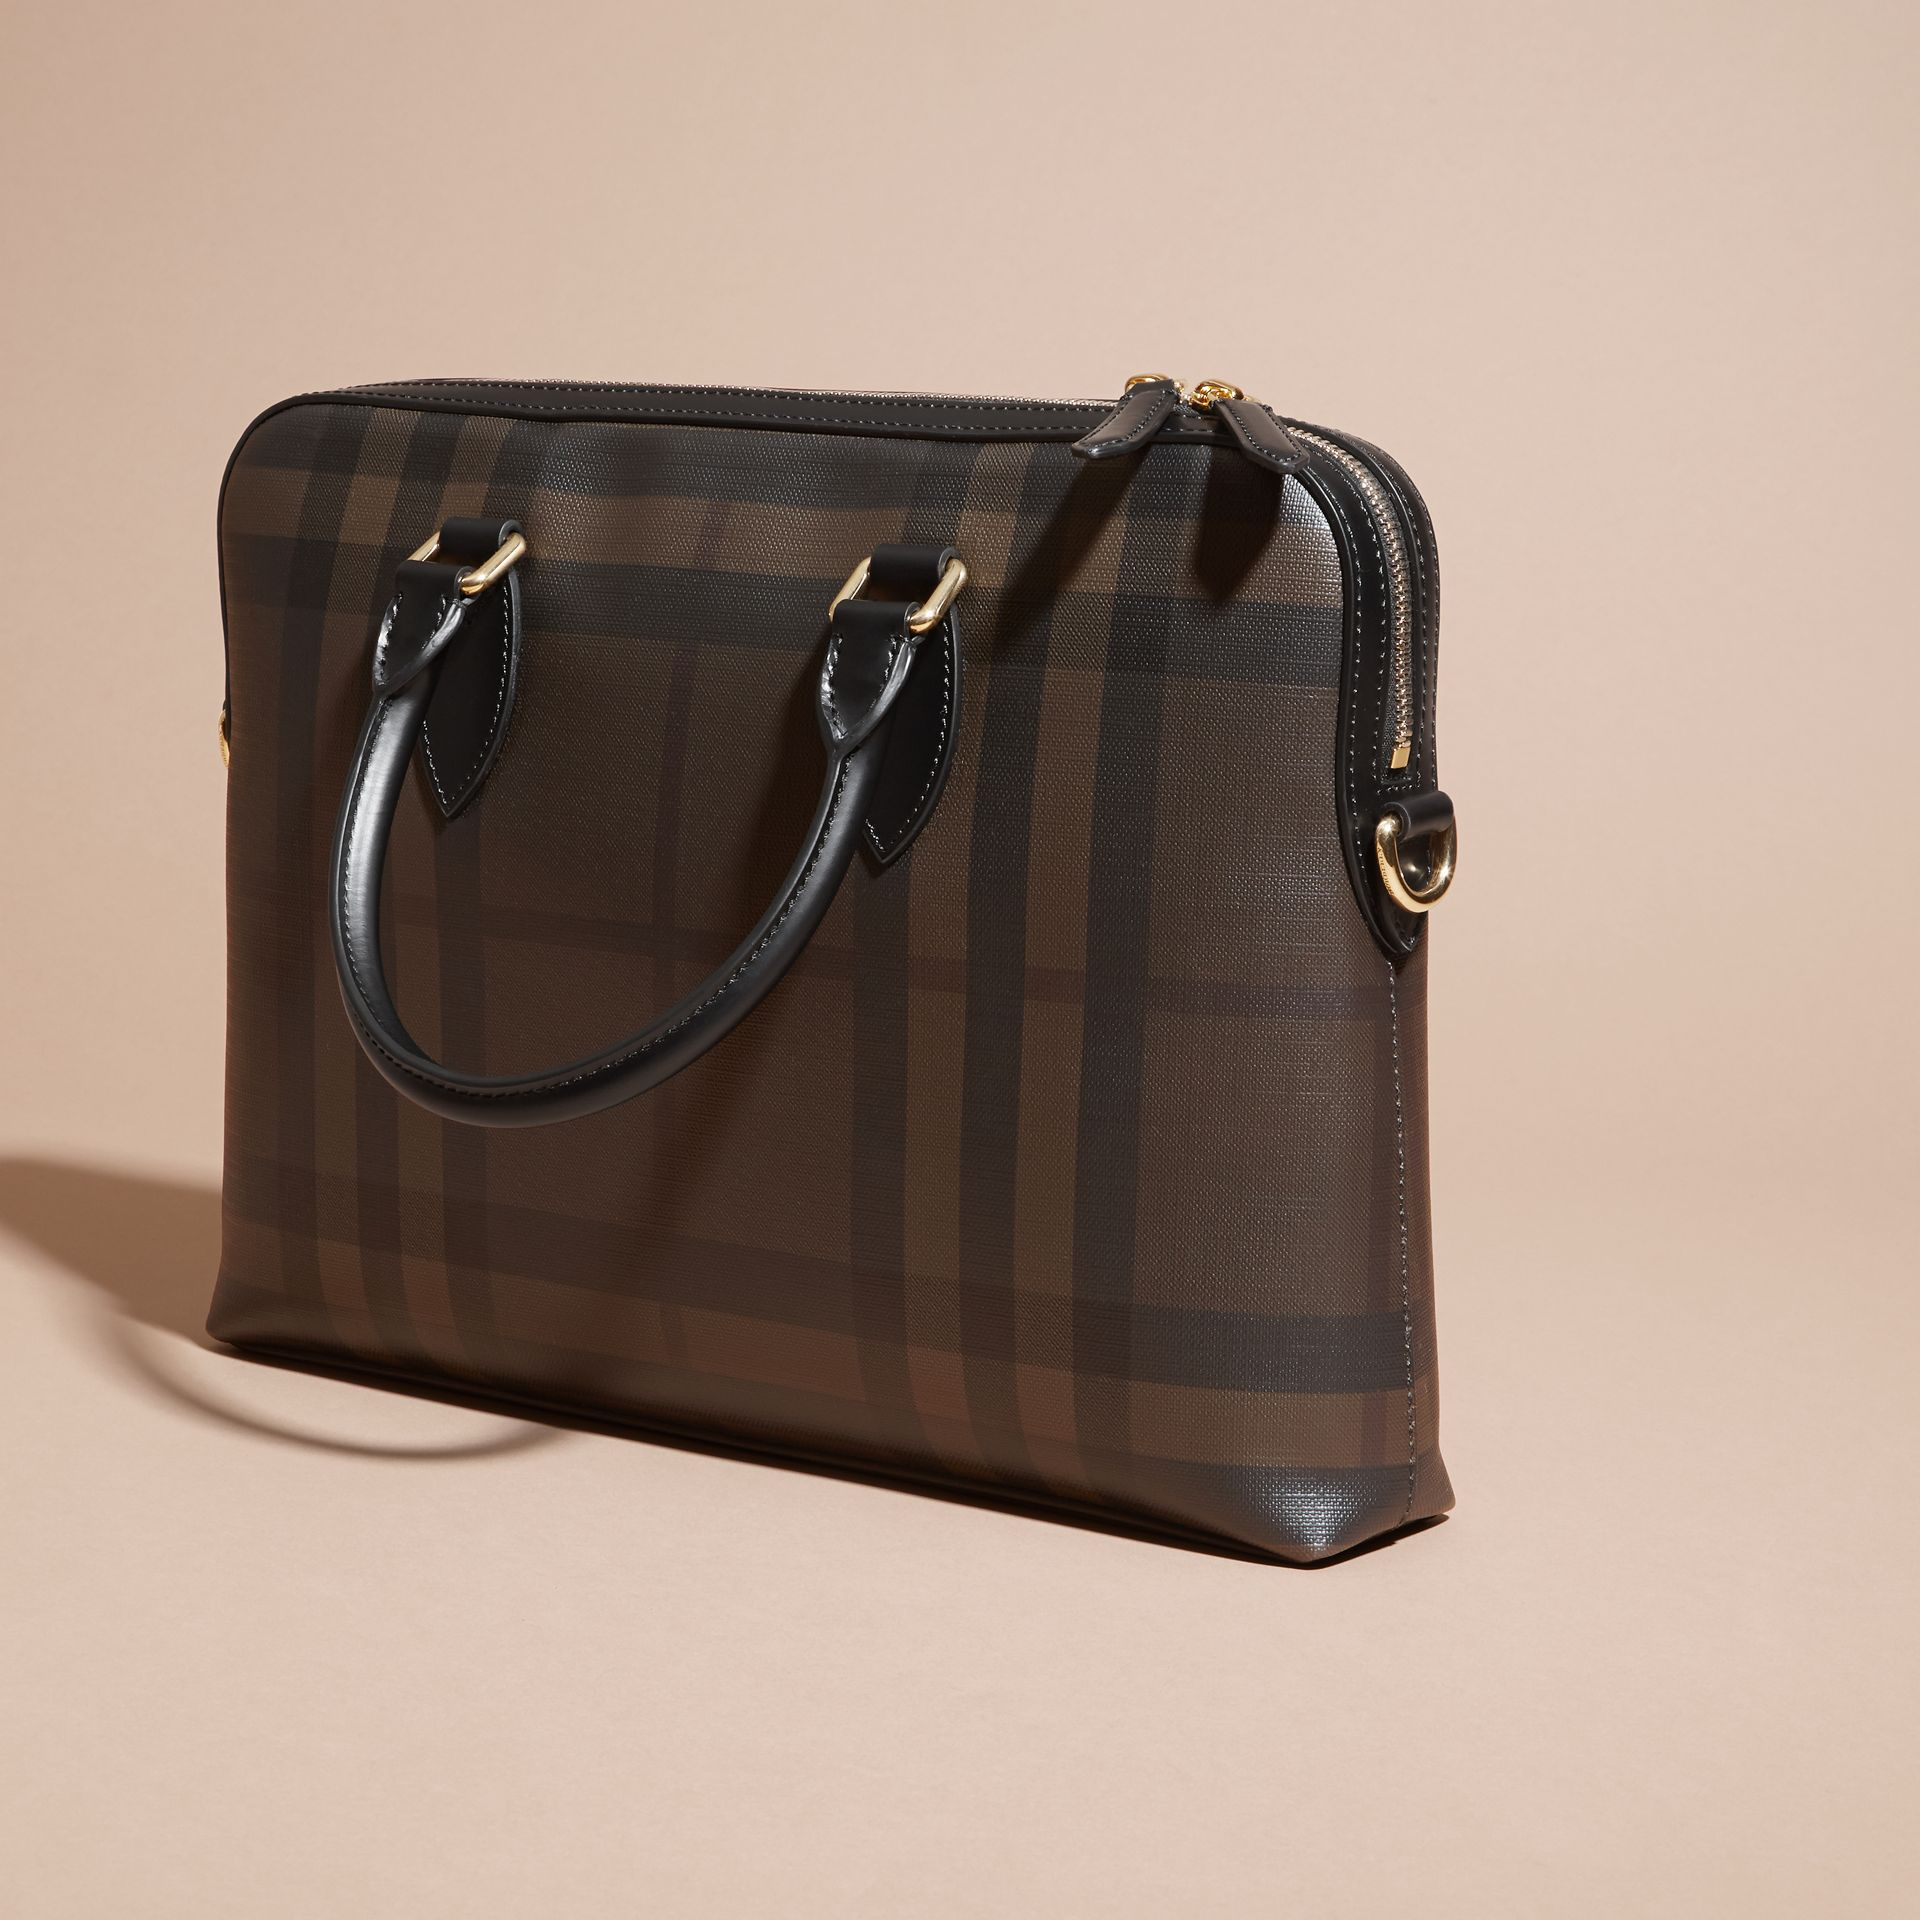 Sac The Barrow fin avec motif London check Chocolat/noir - photo de la galerie 7